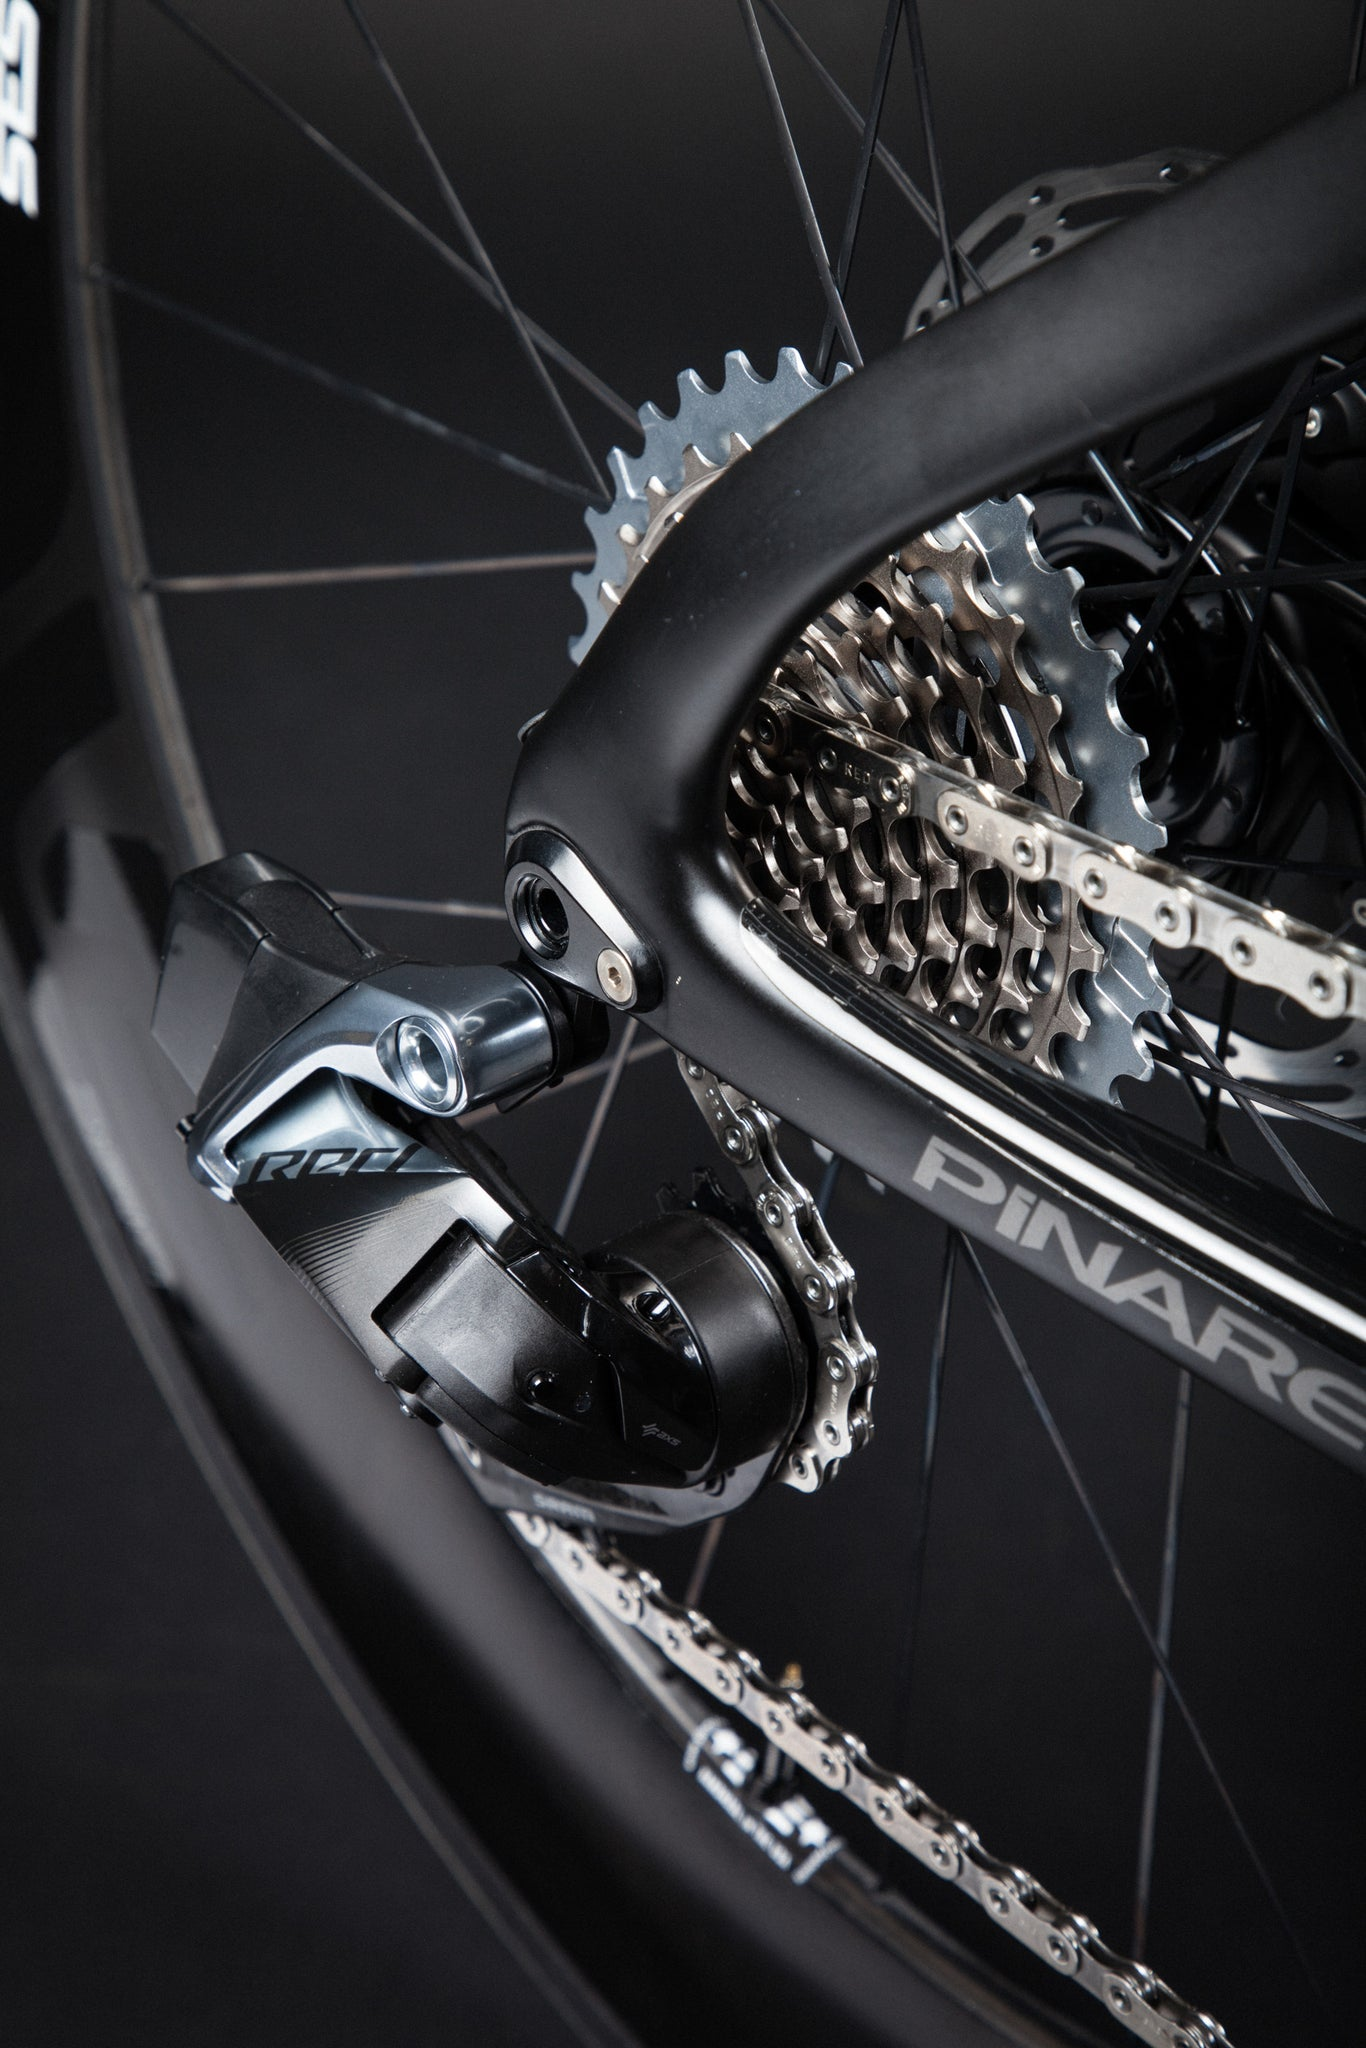 A Blacked Out Pinarello Bolide Gallery derailleur cassette